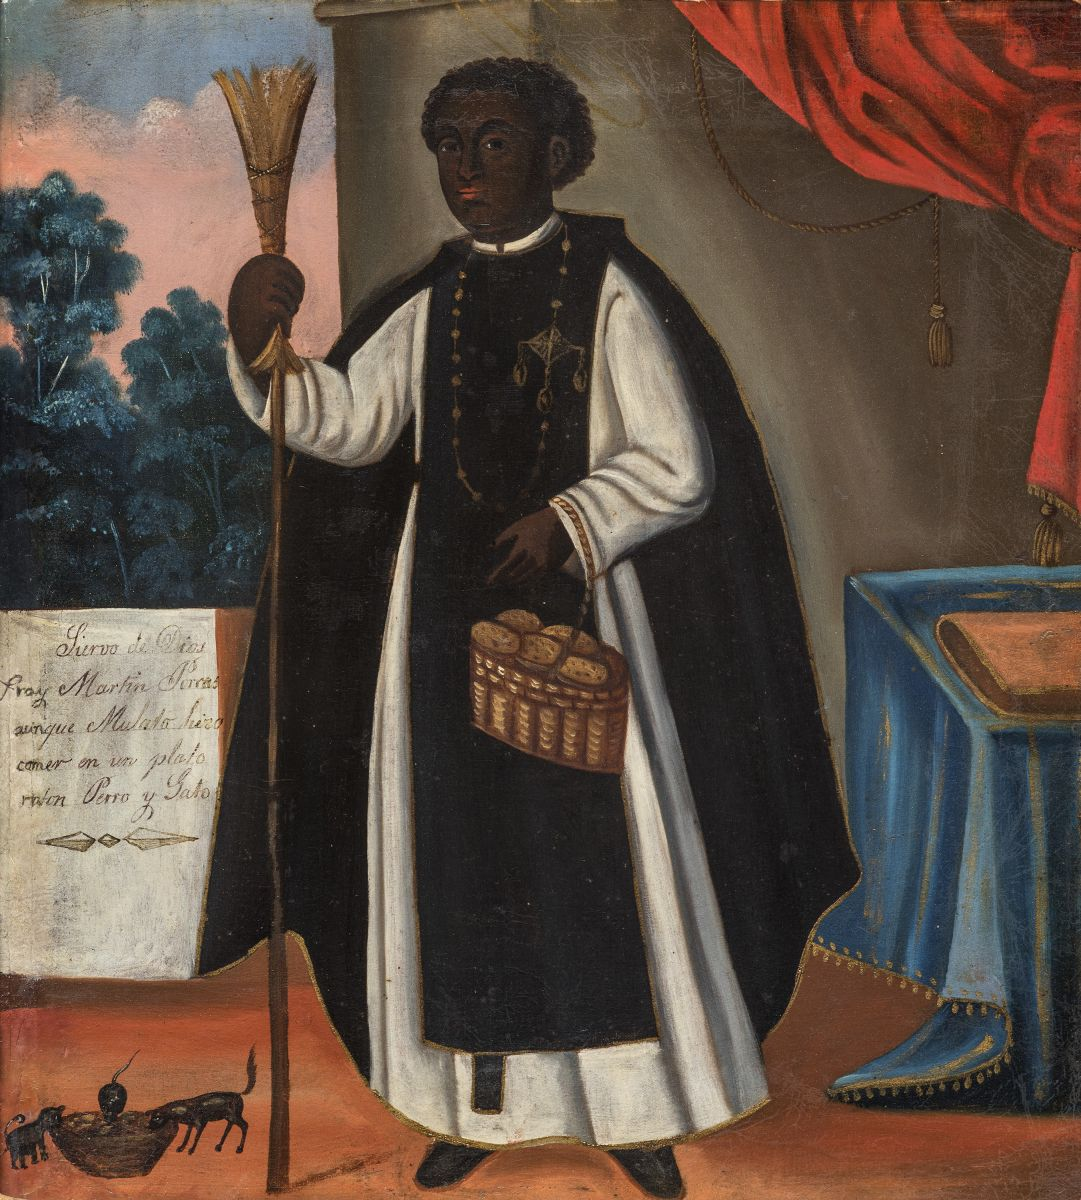 Saint Martin de Porres, oil on canvas, 19th century, Barbosa-Stern Collection, Lima